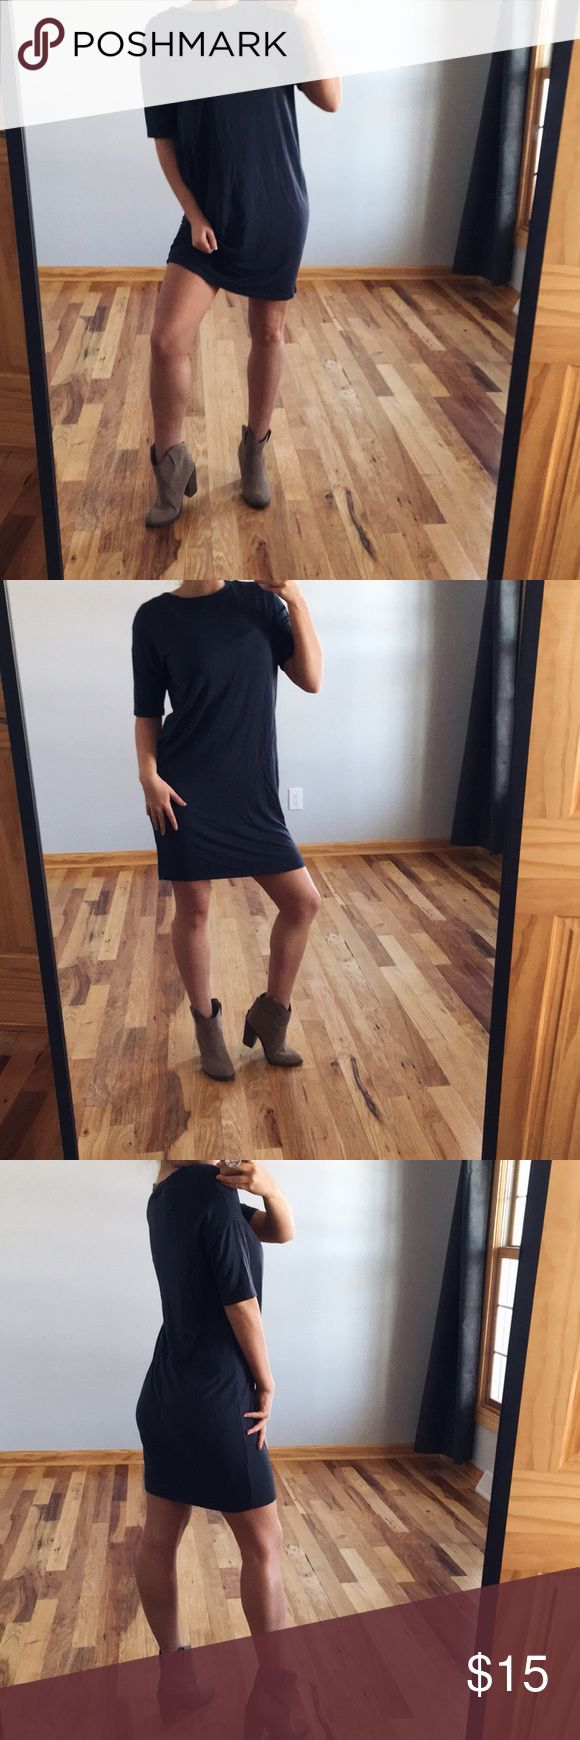 half sleeve shirt dress gently used half sleeve dress, super soft and casual, perfect with a jean jacket and booties! Dresses Midi